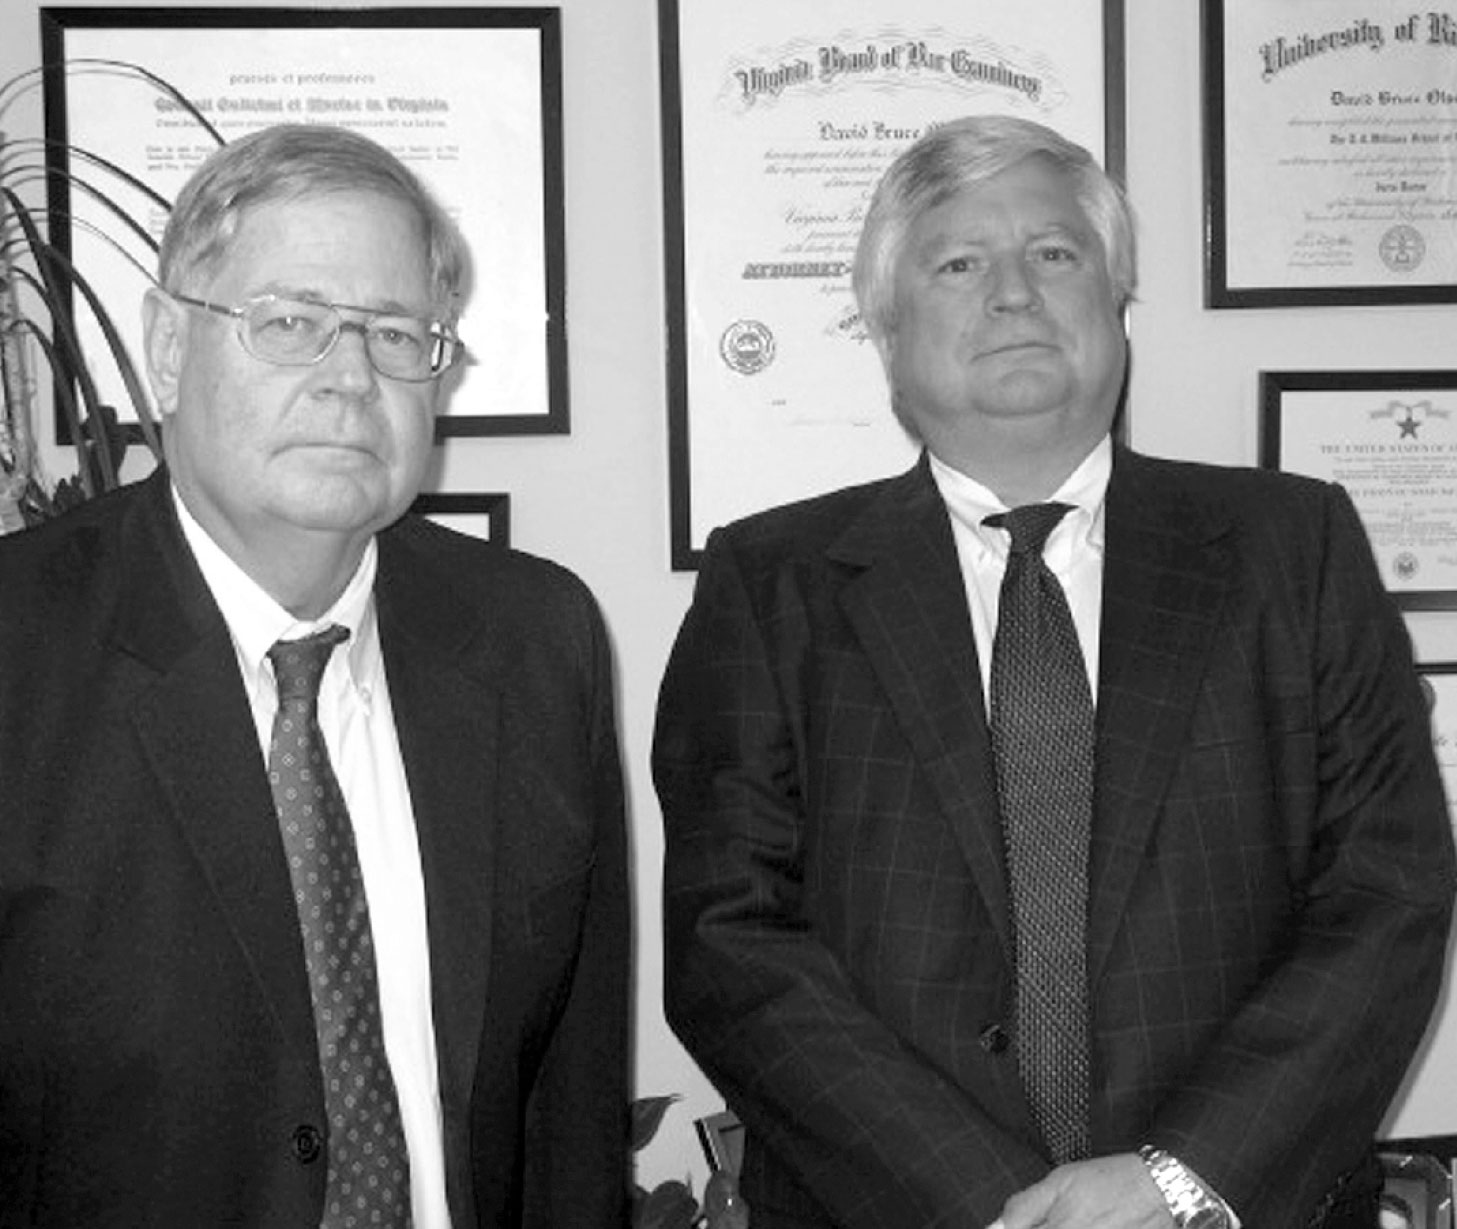 David Olson and Johnny Cope of Cope and Olson Law Firm, clipping from the Daily Press.